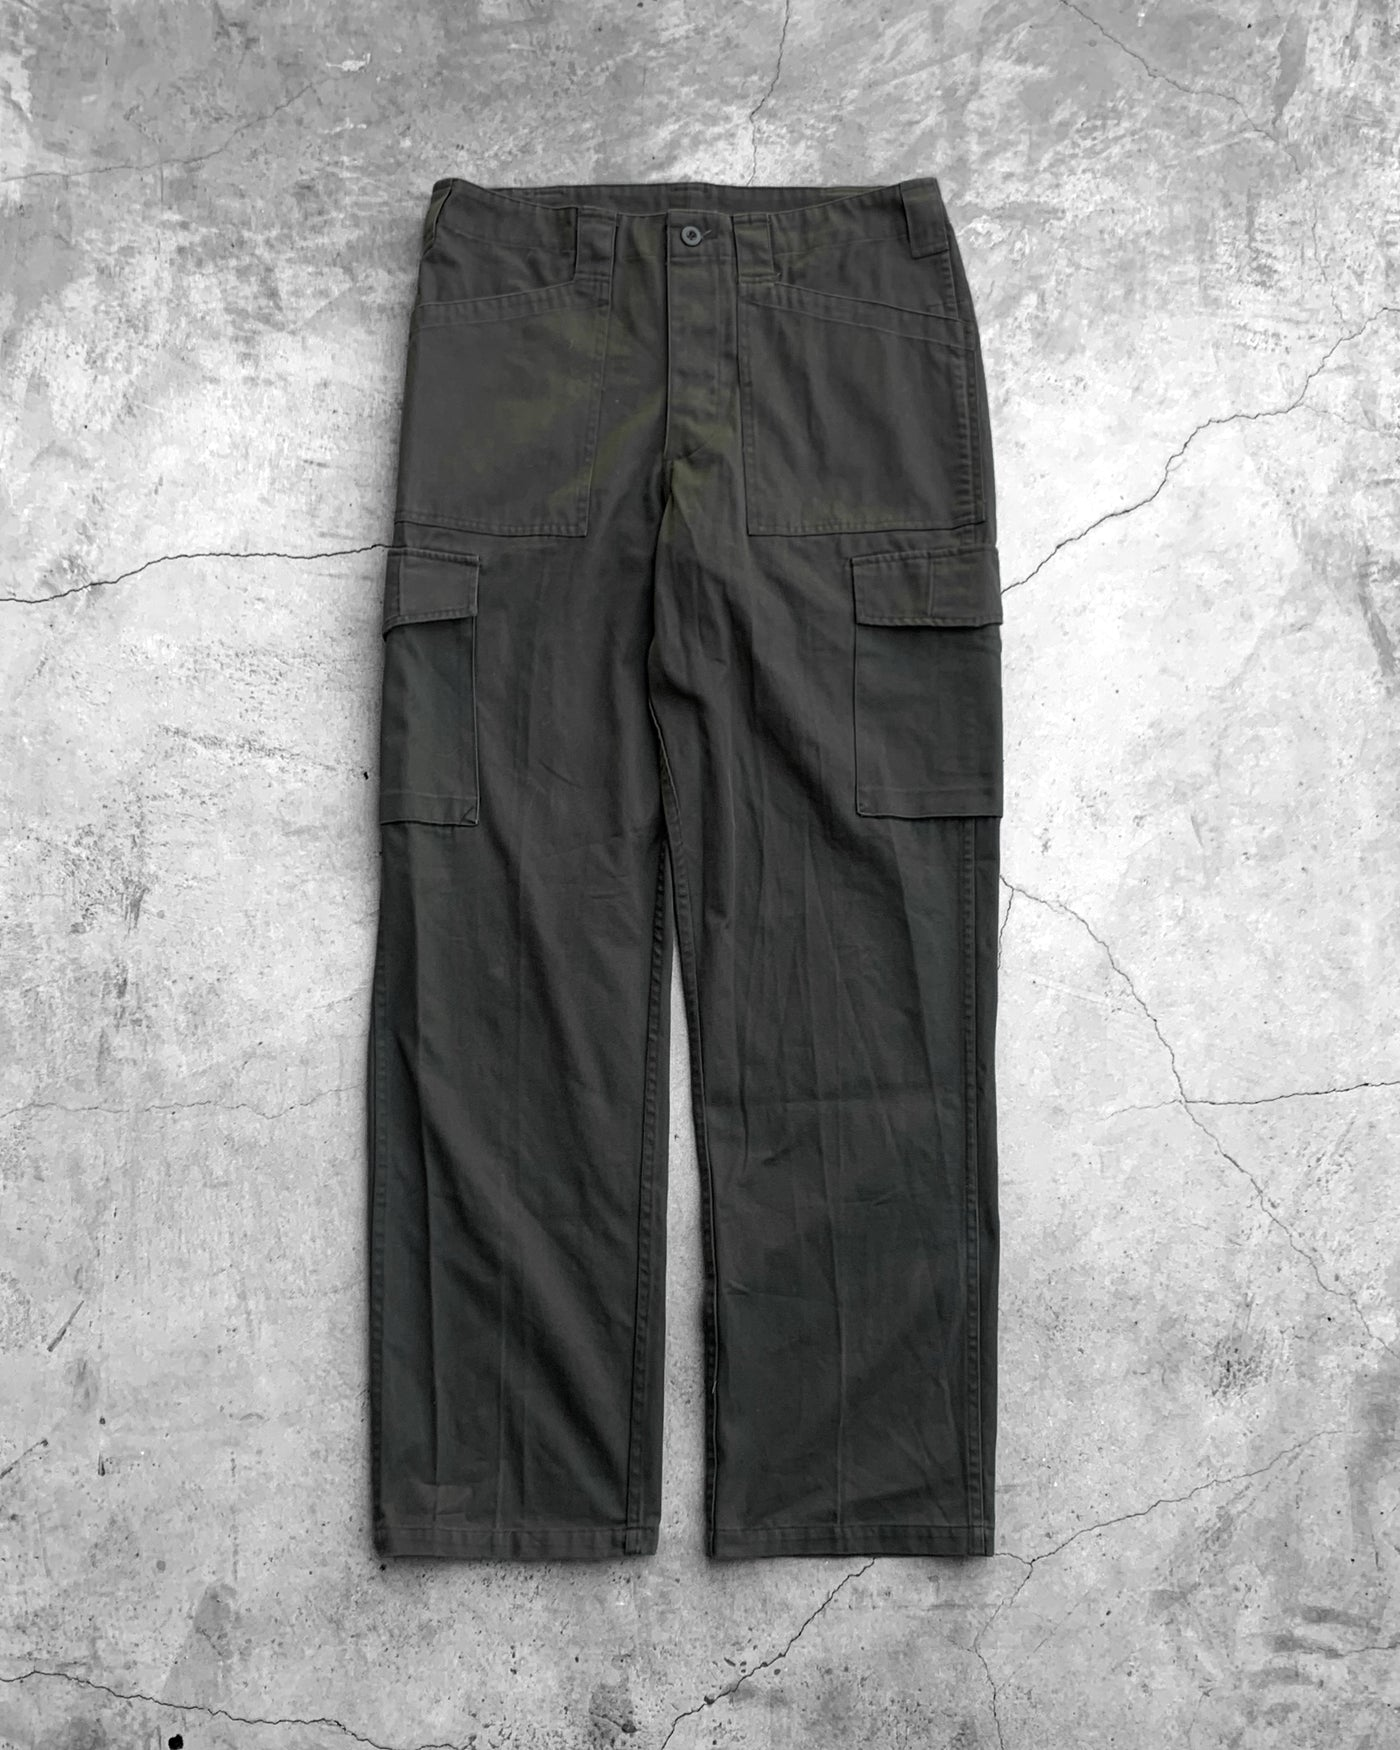 US Military Olive Cargo Pants - 1990s